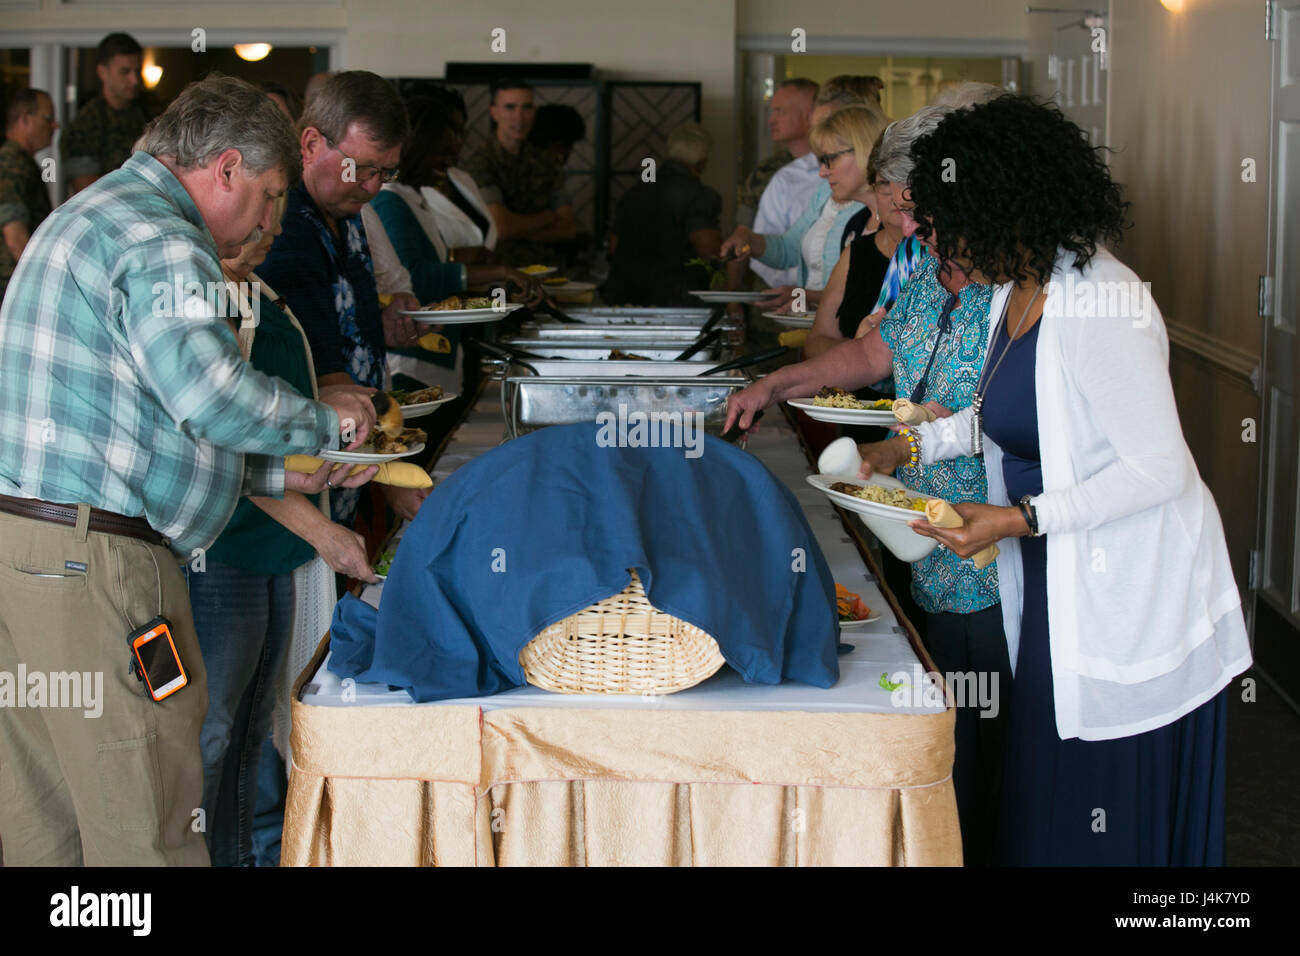 Attendees go through the lunch buffet during the National Day of Prayer celebration on Marine Corps Air Station - Stock Image